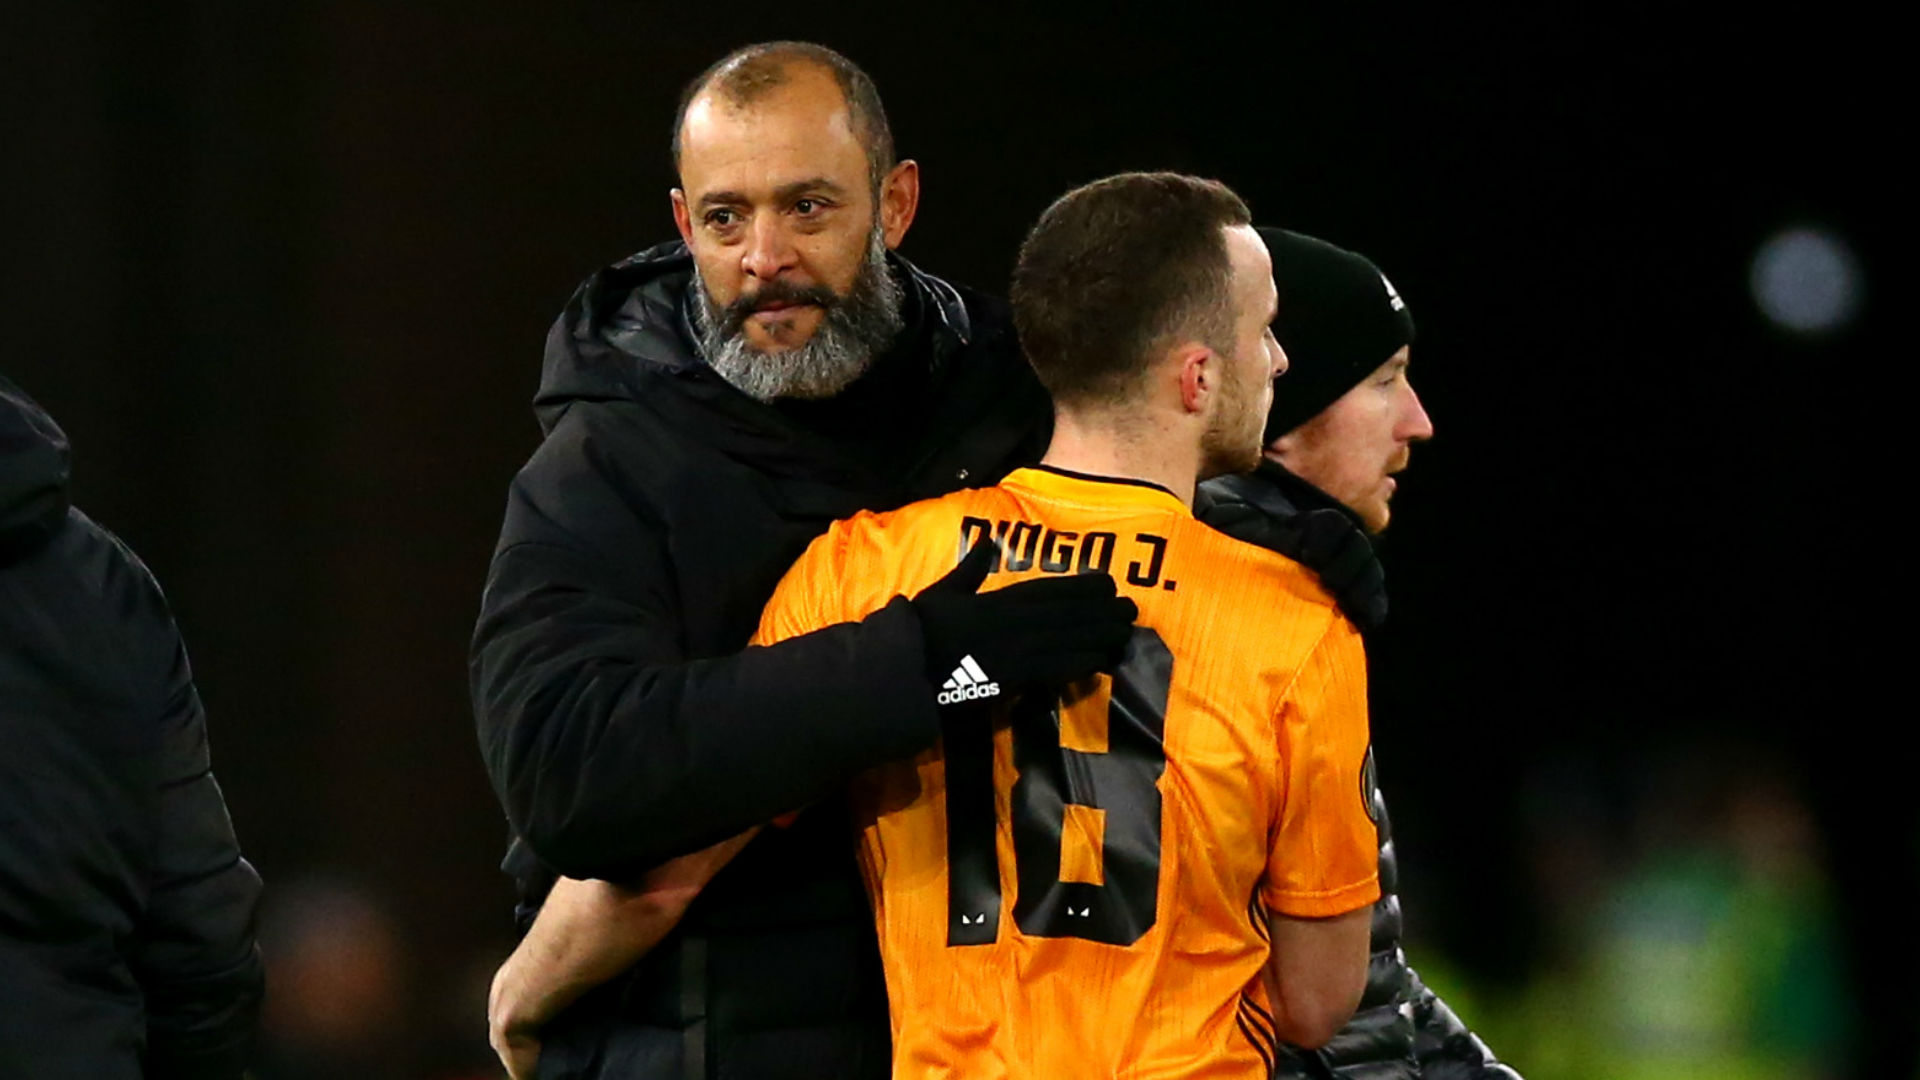 Diogo Jota Moving To The Right Place In Liverpool Nuno